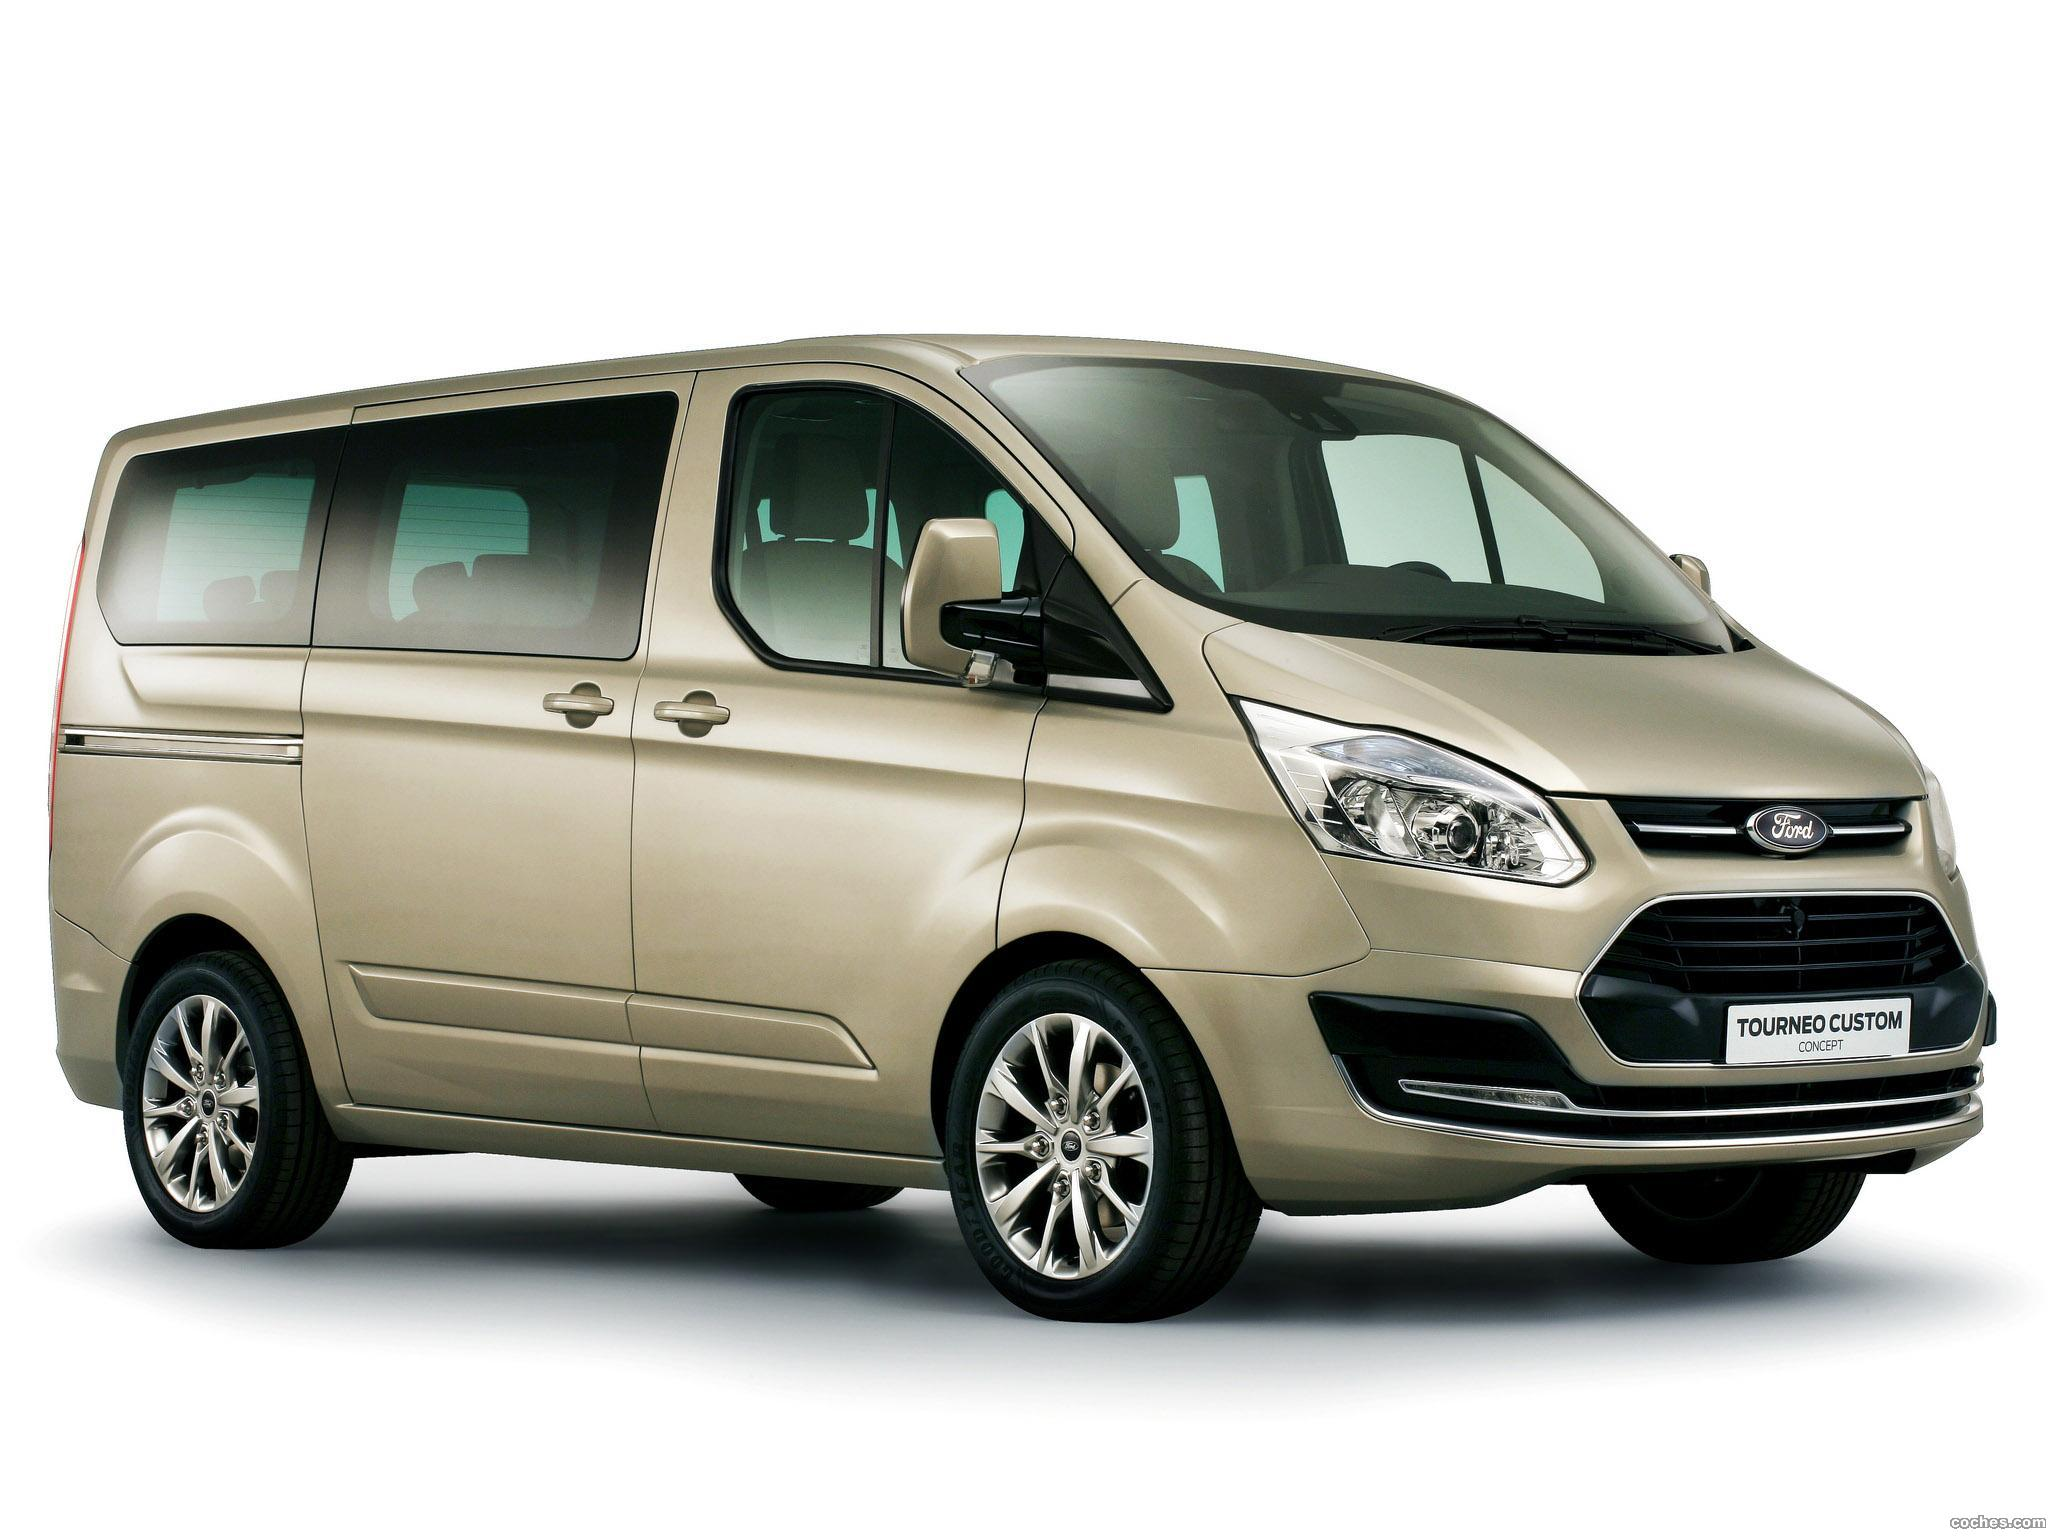 Foto 0 de Ford Tourneo Custom 2012